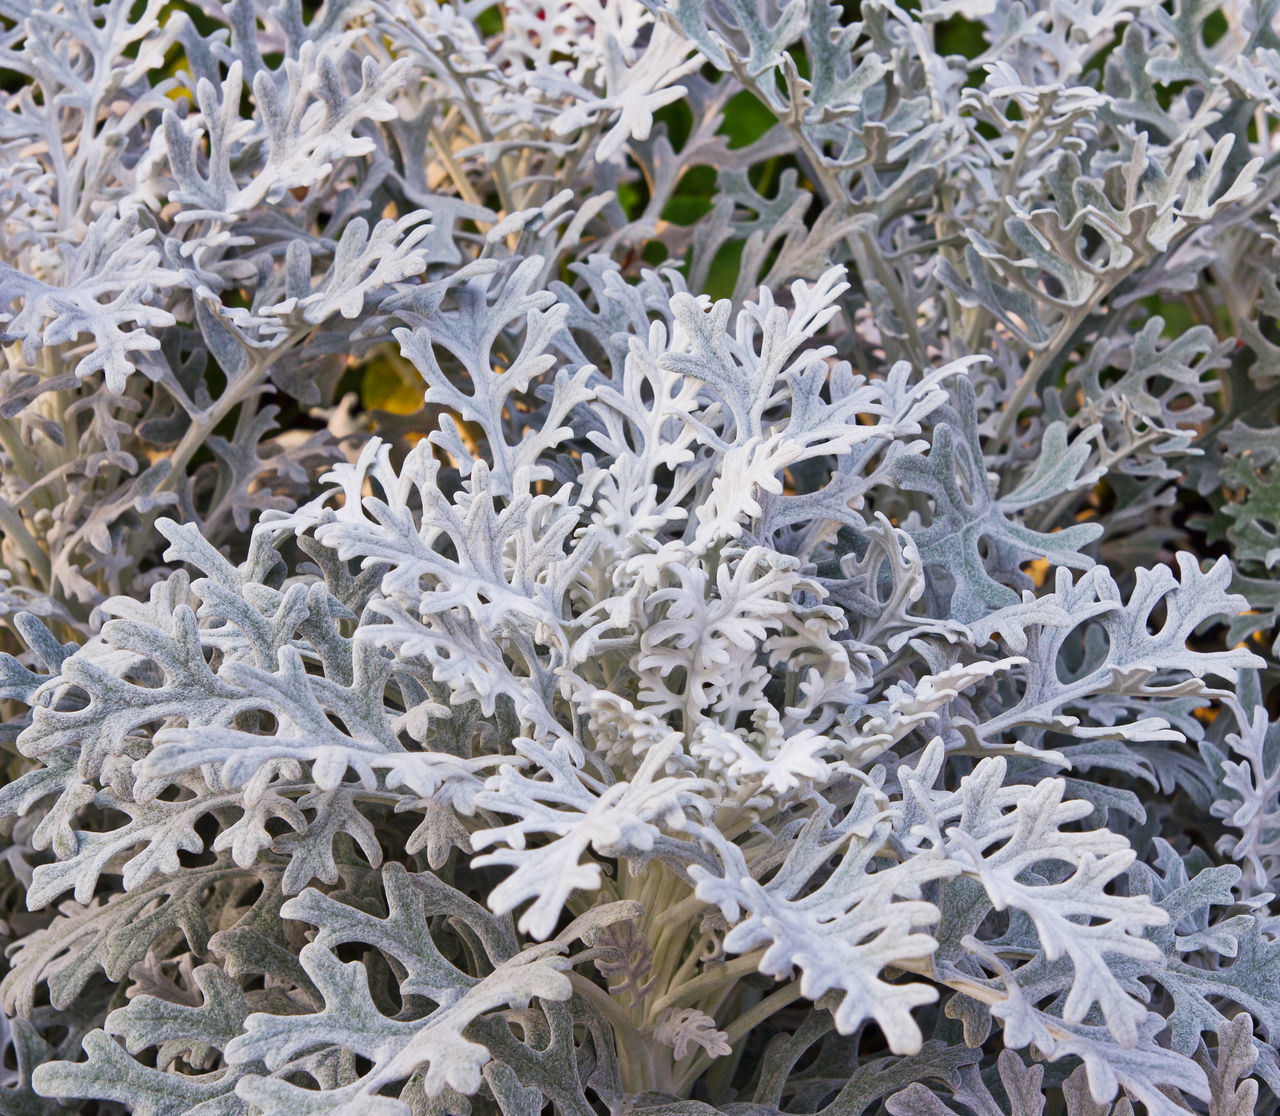 HIGH ANGLE VIEW OF SNOW ON PLANT